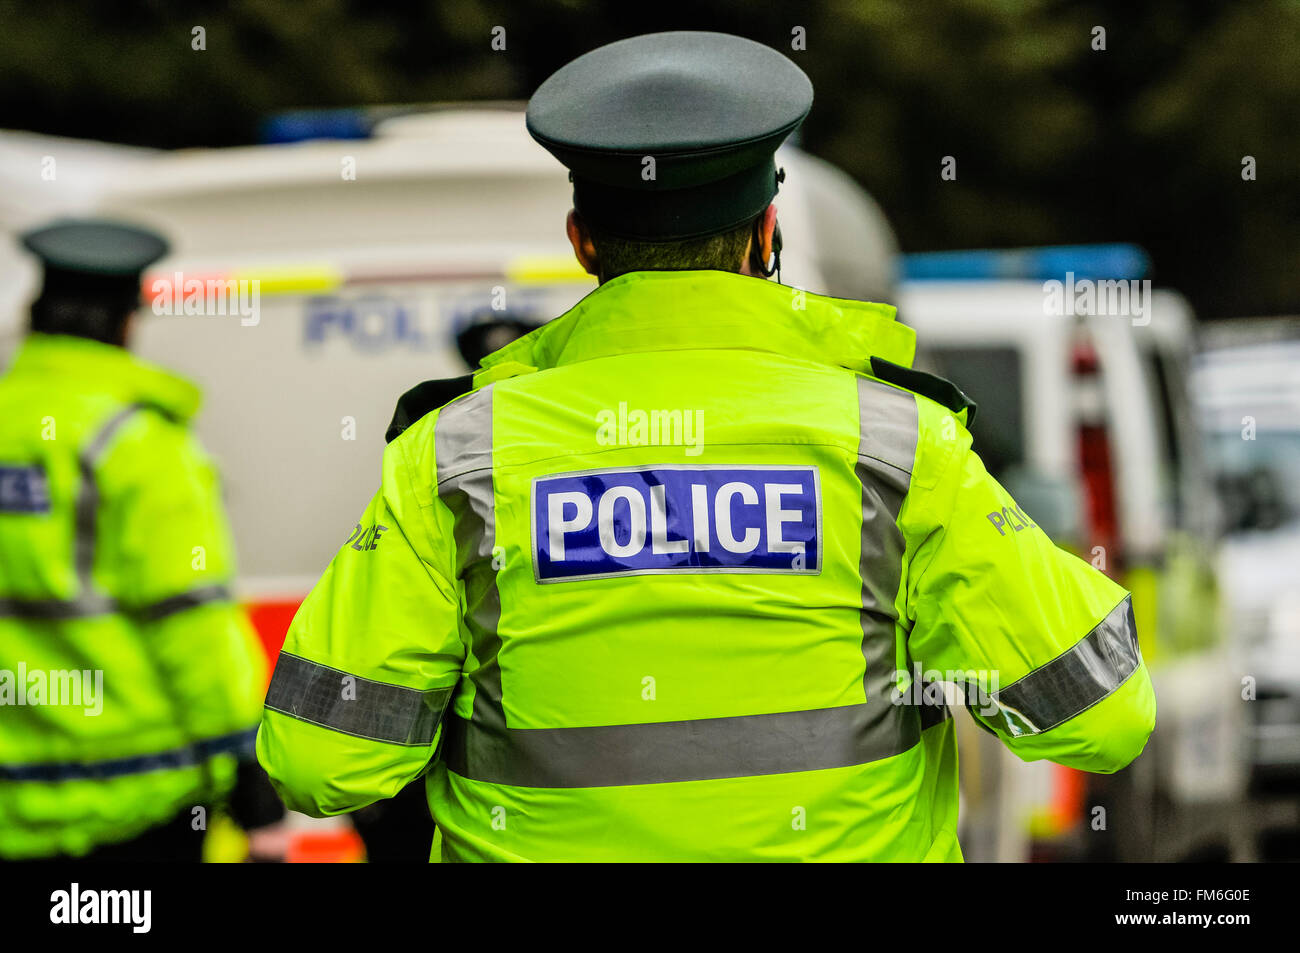 Police wearing high-visibility jackets on duty. - Stock Image